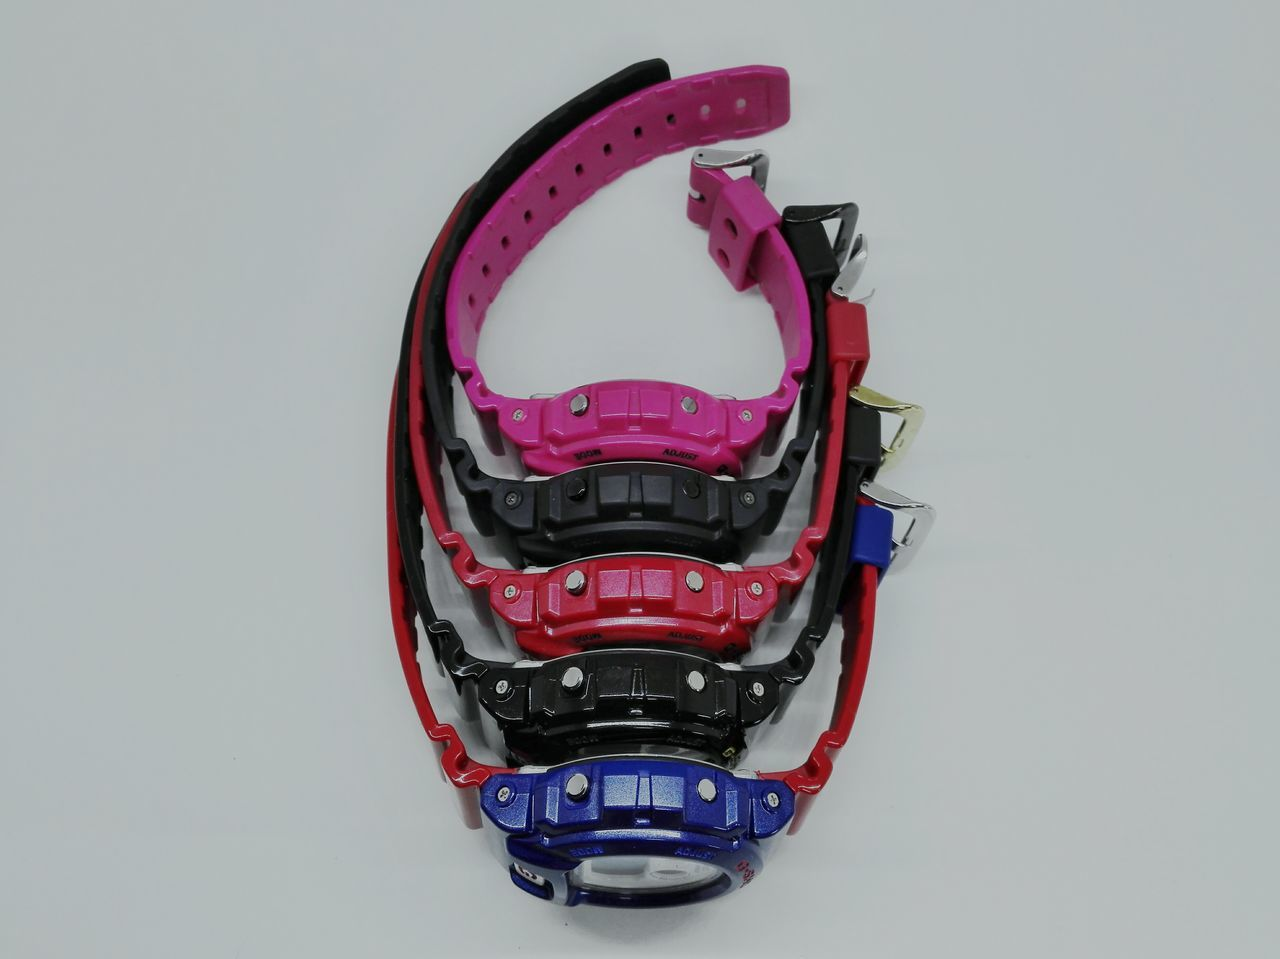 Arts Culture And Entertainment Gshock G-shock Gshock Collection Watch Gshocklover Studio Photography No People Dw6900 Time Digital Watch Colourful